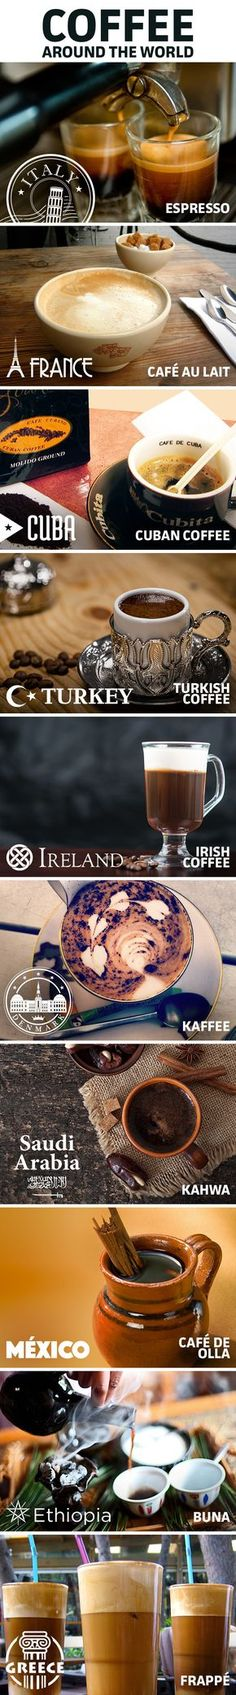 See how people around the world take a cup of coffee!